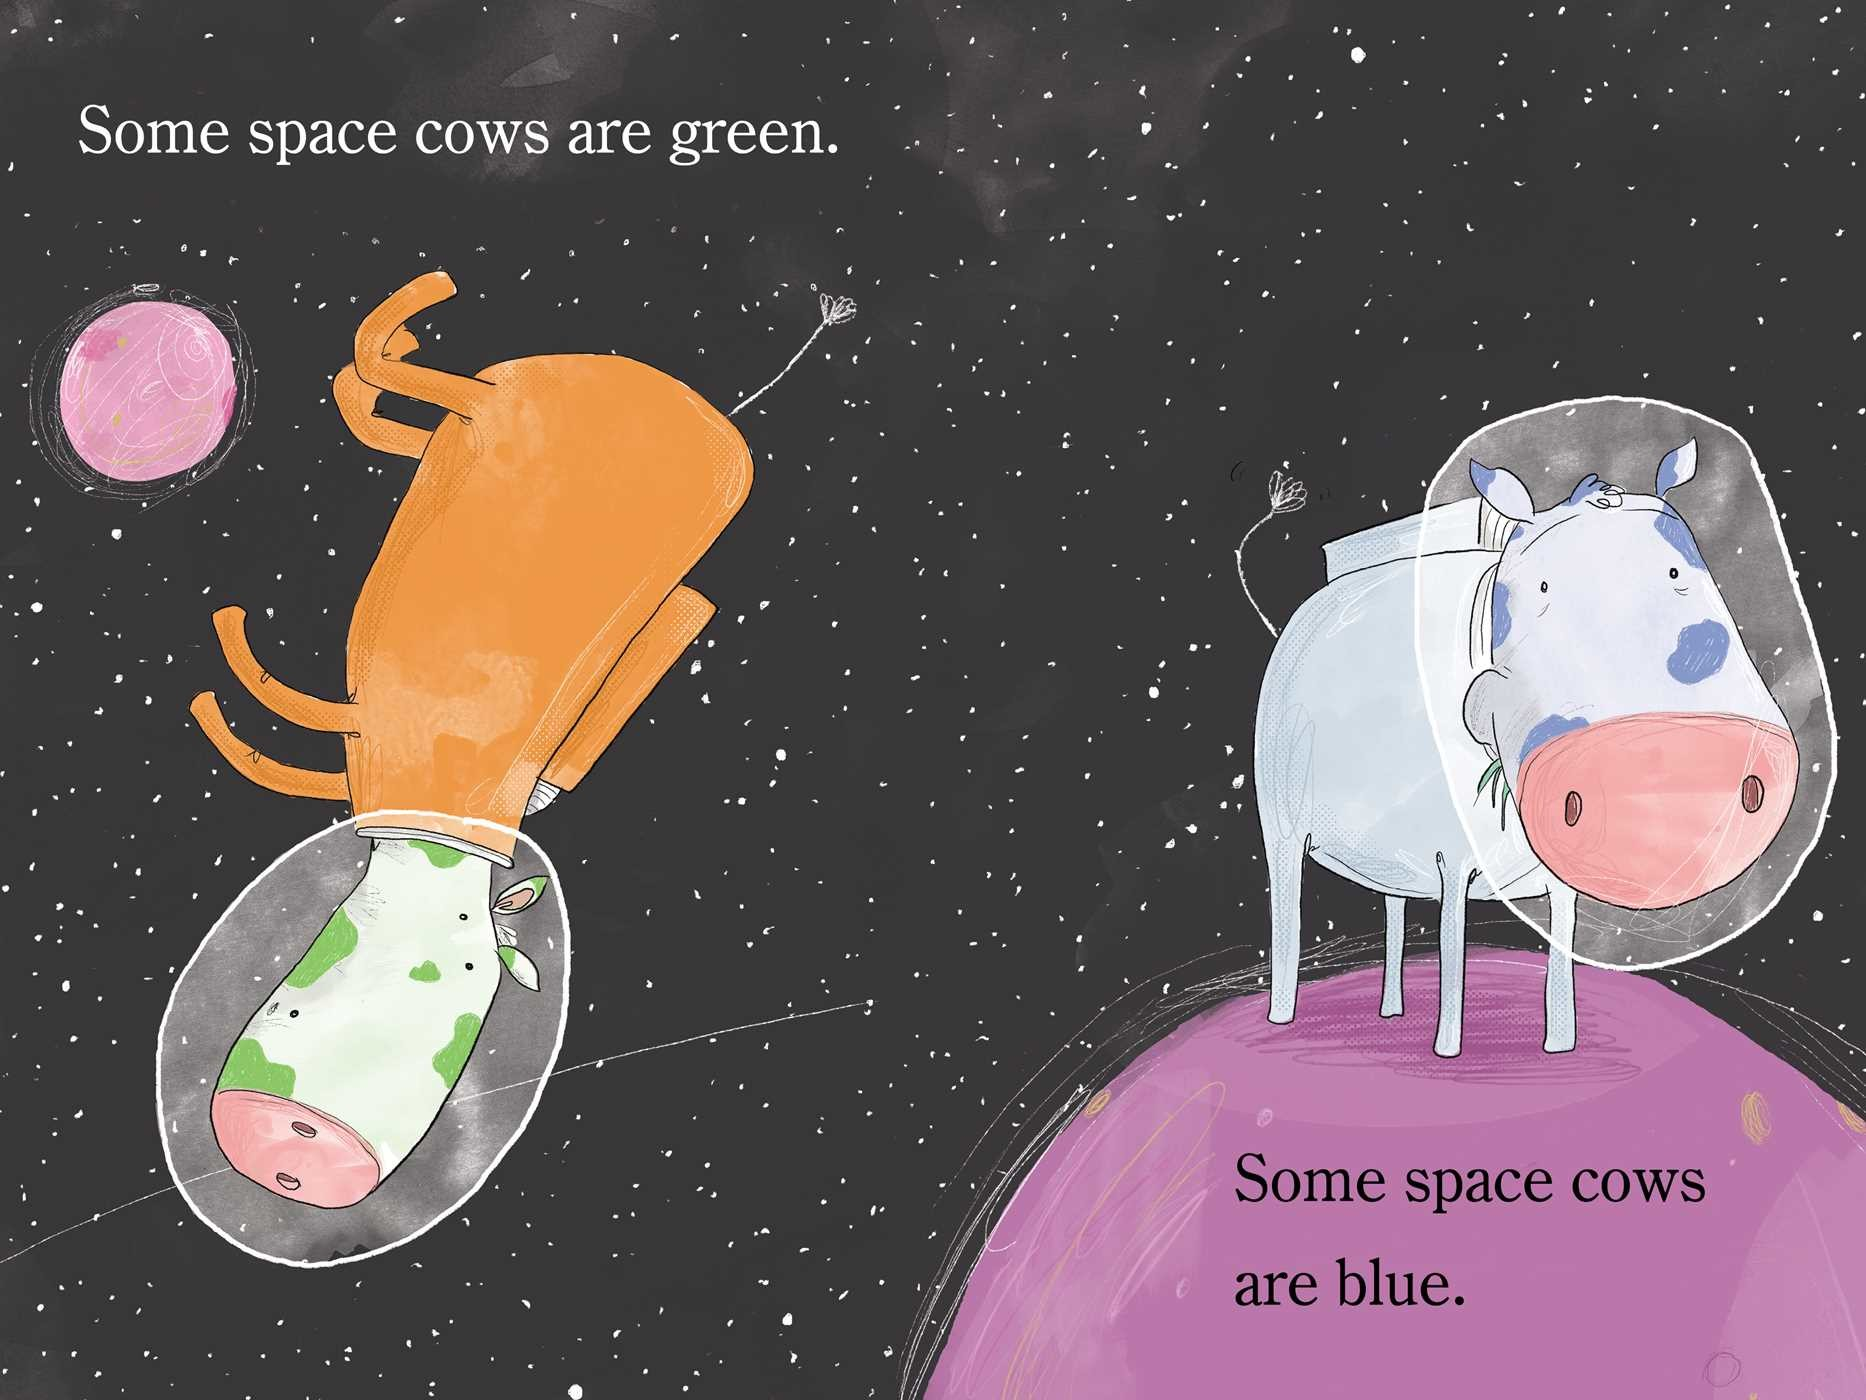 Space cows 9781534428751.in02